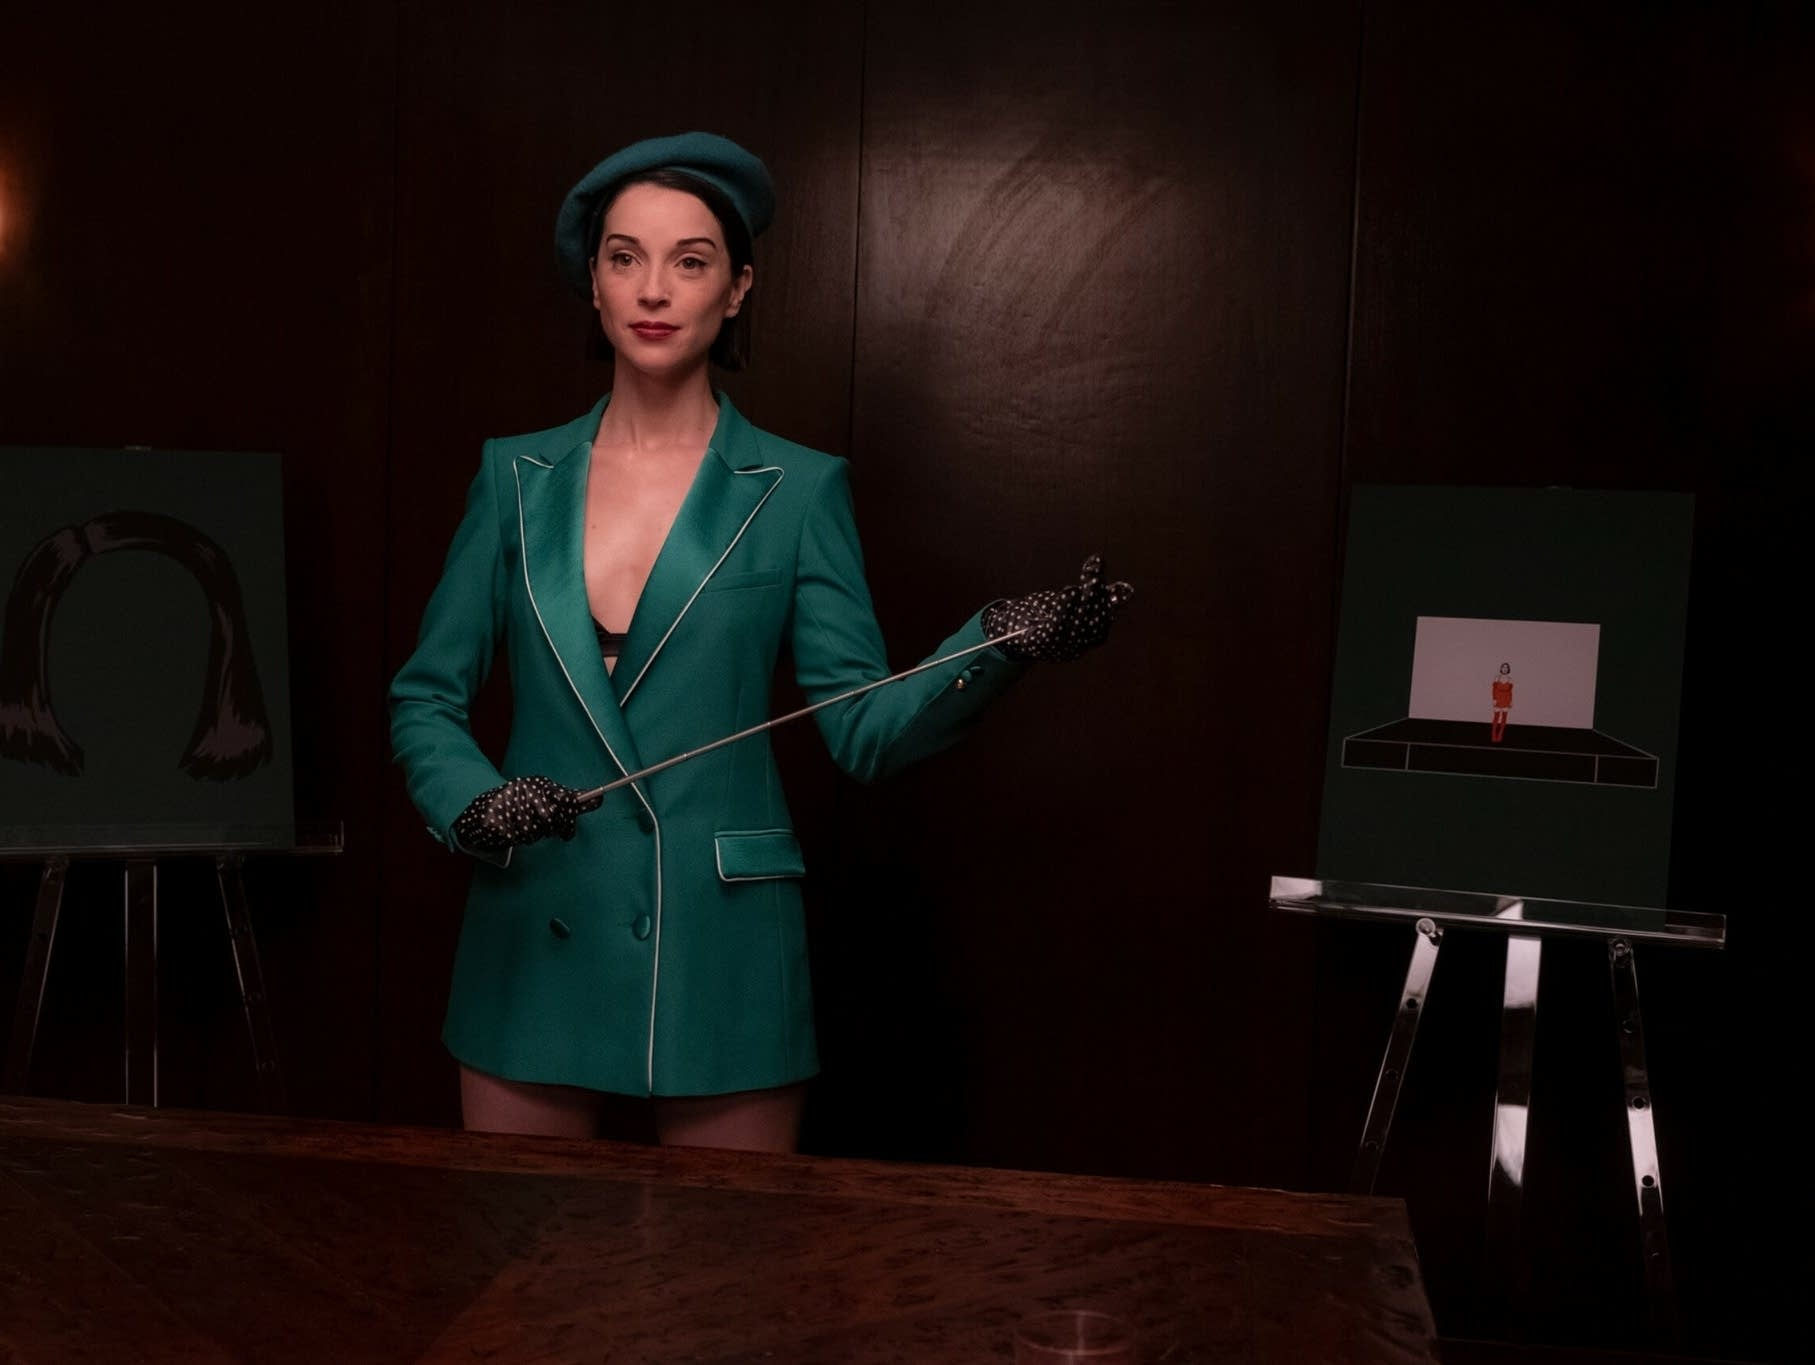 St. Vincent standing in green suit holding pointer.